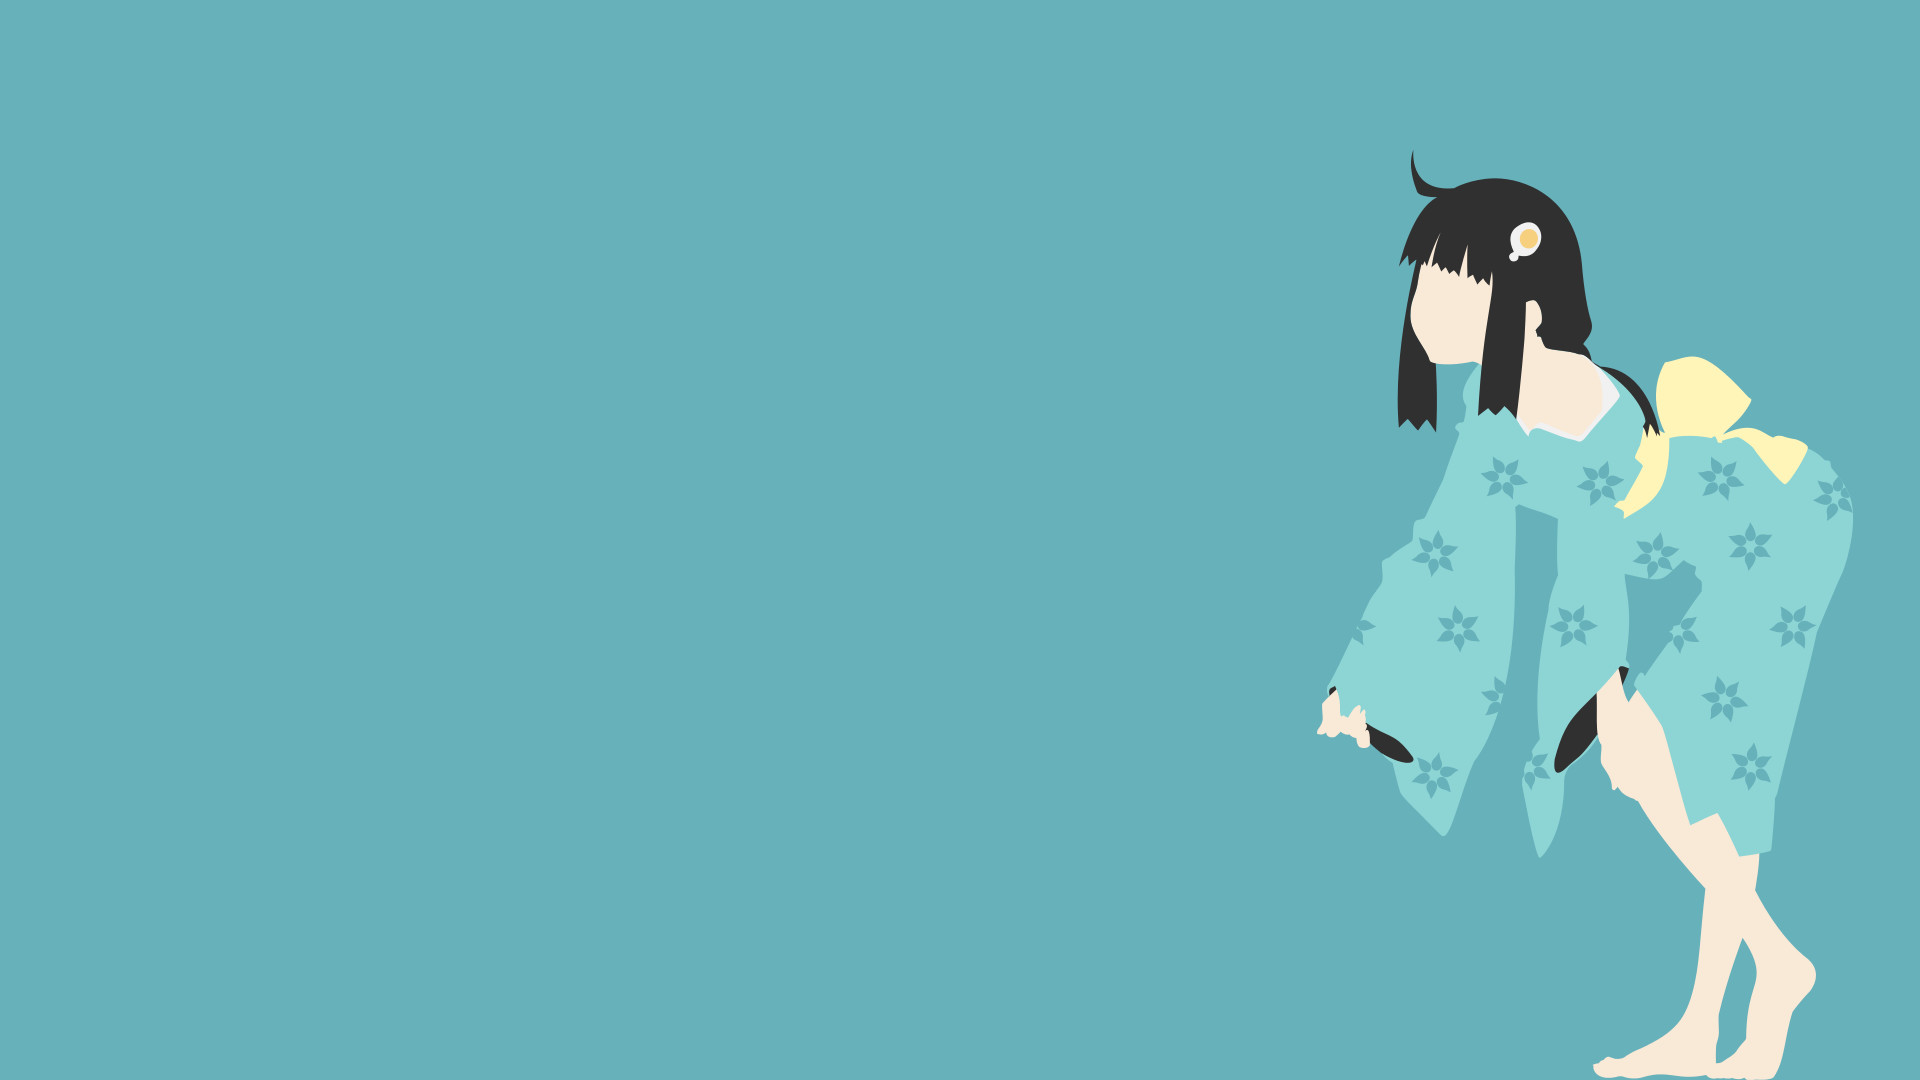 Minimalist anime wallpapers 79 images - Wallpaper manga anime ...